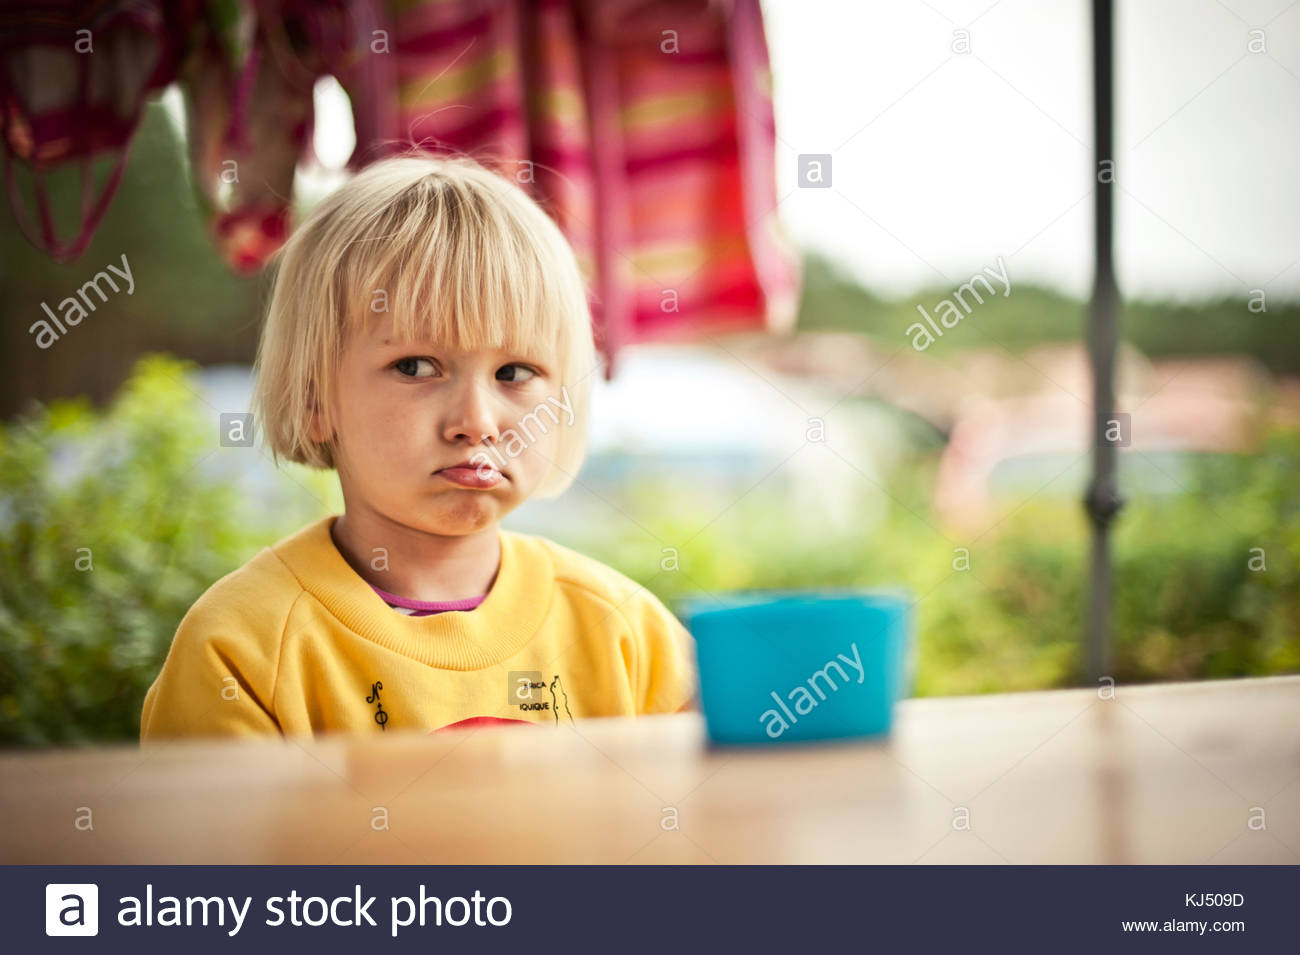 sulky blonde boy - Stock Image